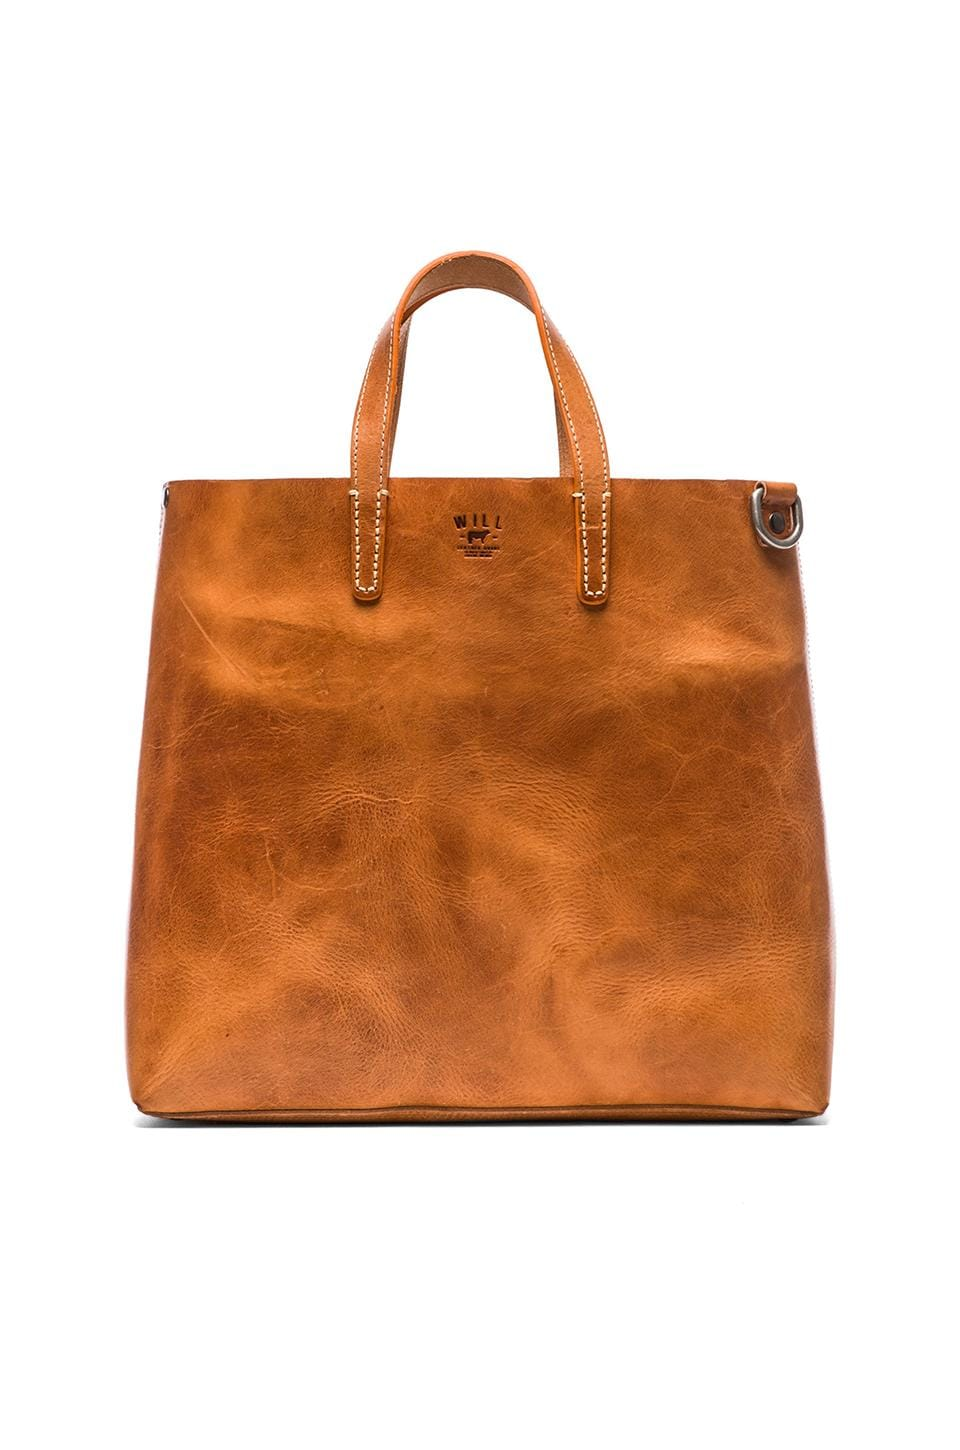 WILL Leather Goods Douglas Tote in Natural